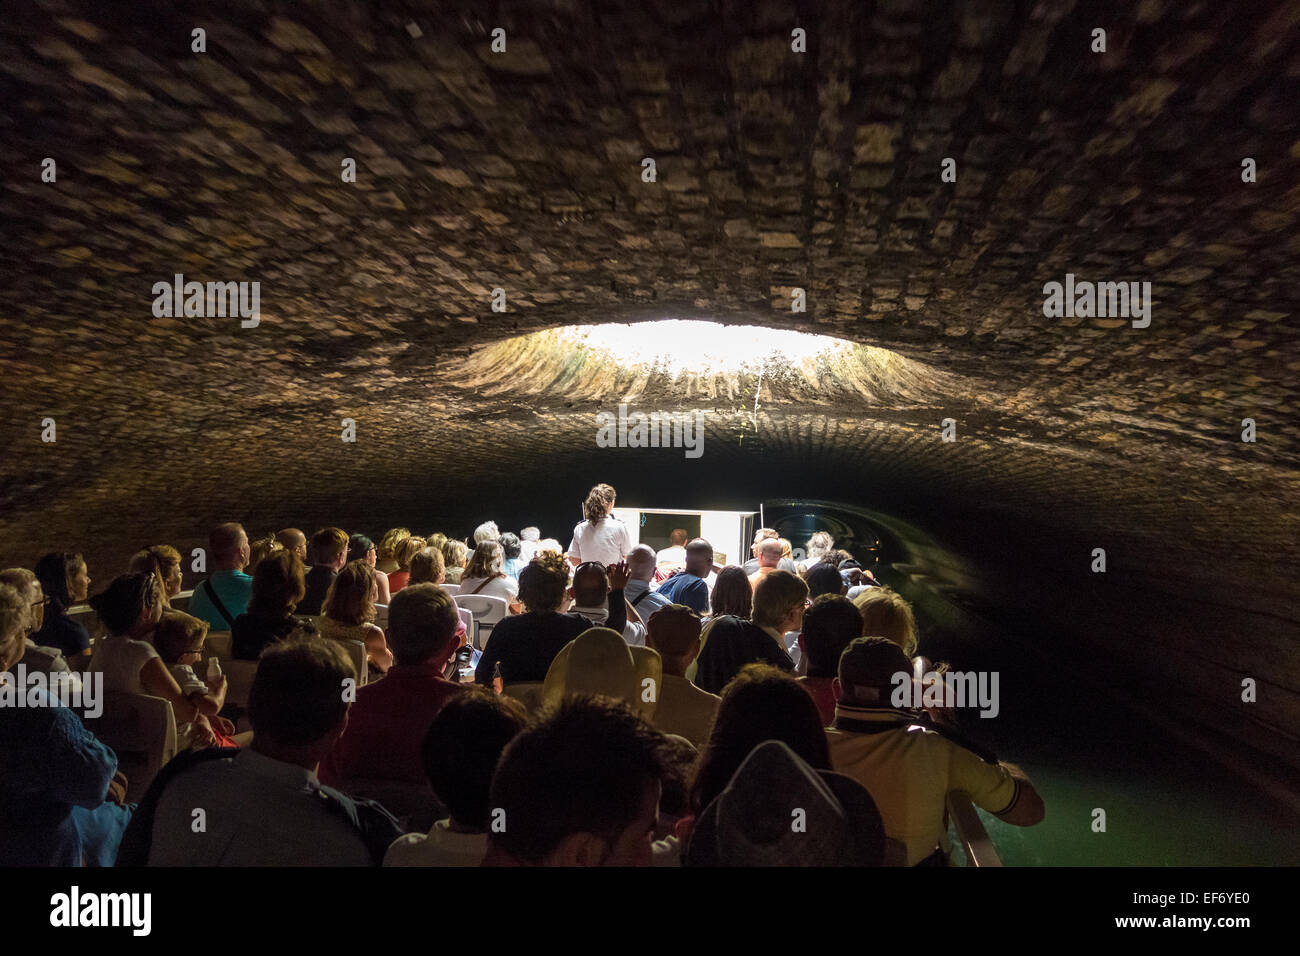 Paris Canal Saint Martin. A tourist canal cruise boat in the underground tunnel part of the Canal St Martin Paris. - Stock Image